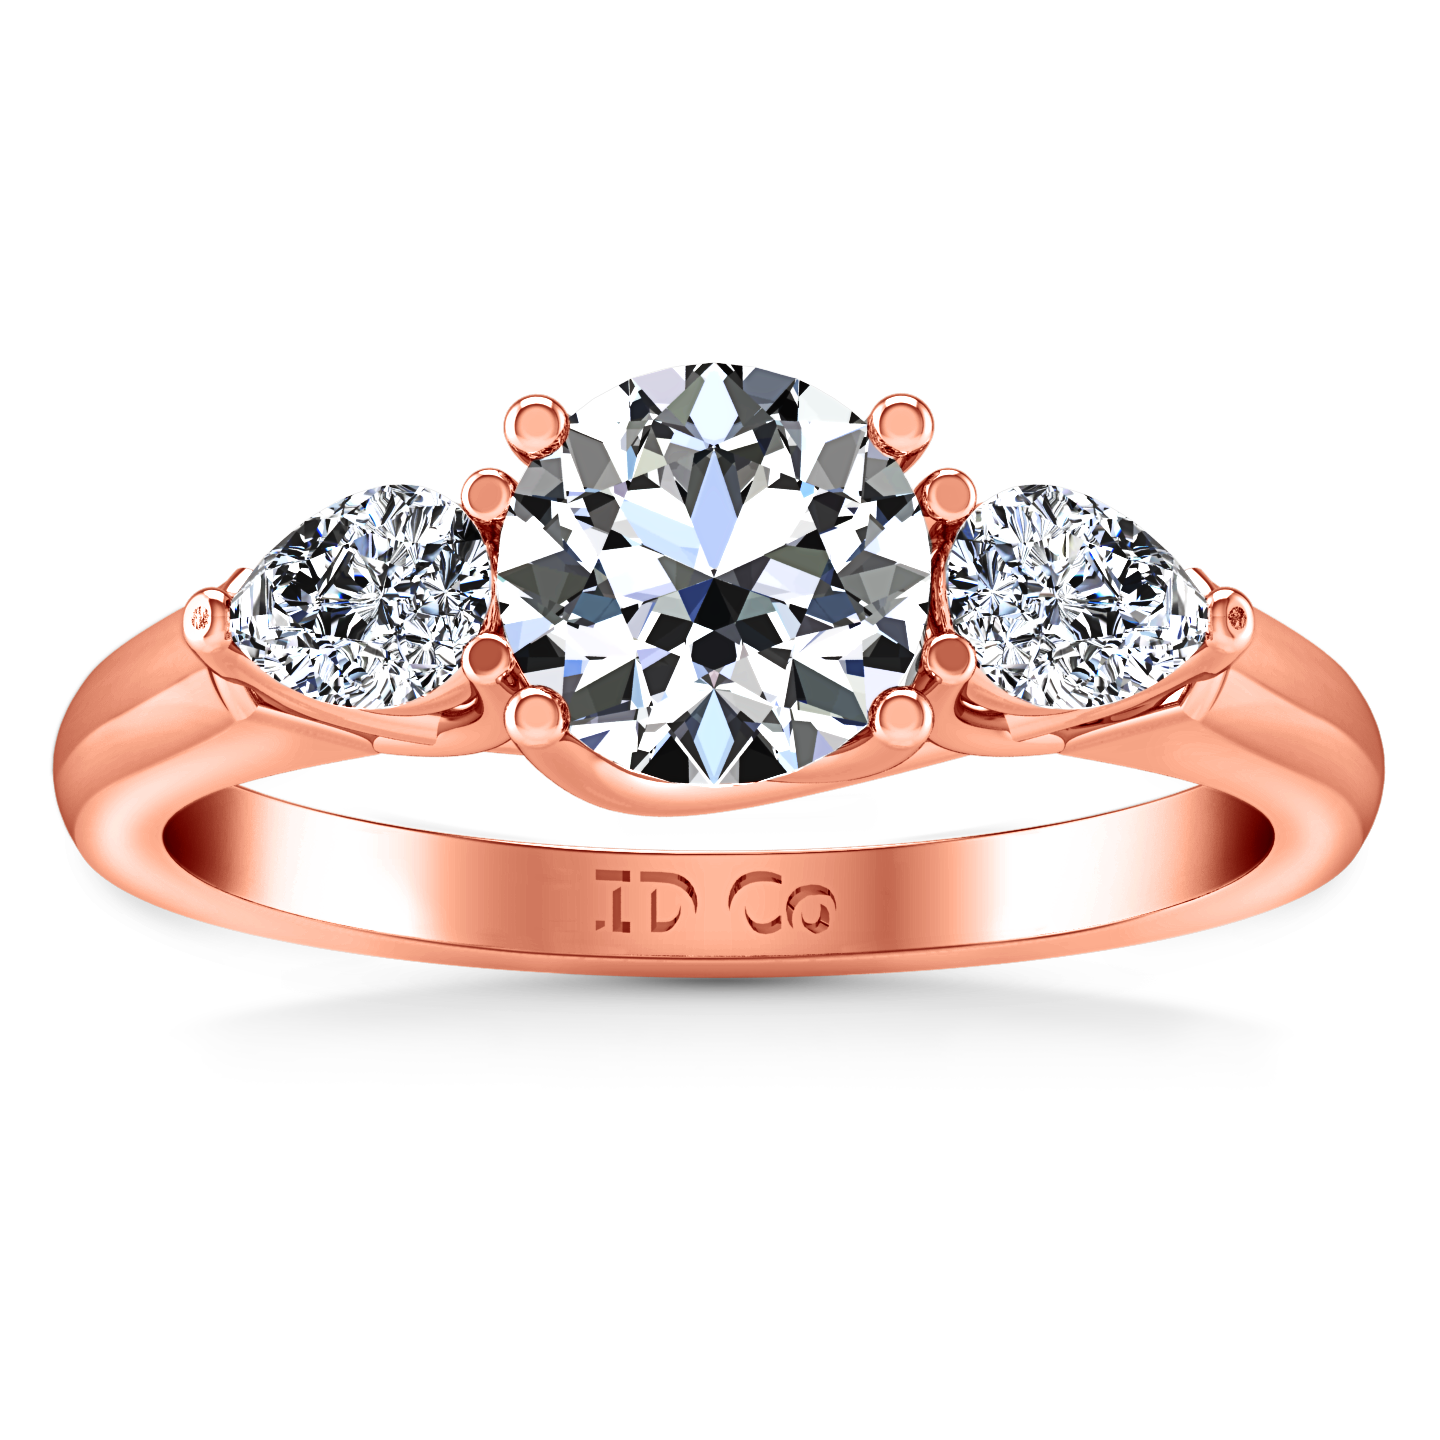 rings this oval image pave diamond setting ring center three accents a c the shows with w wedding stone engagement can